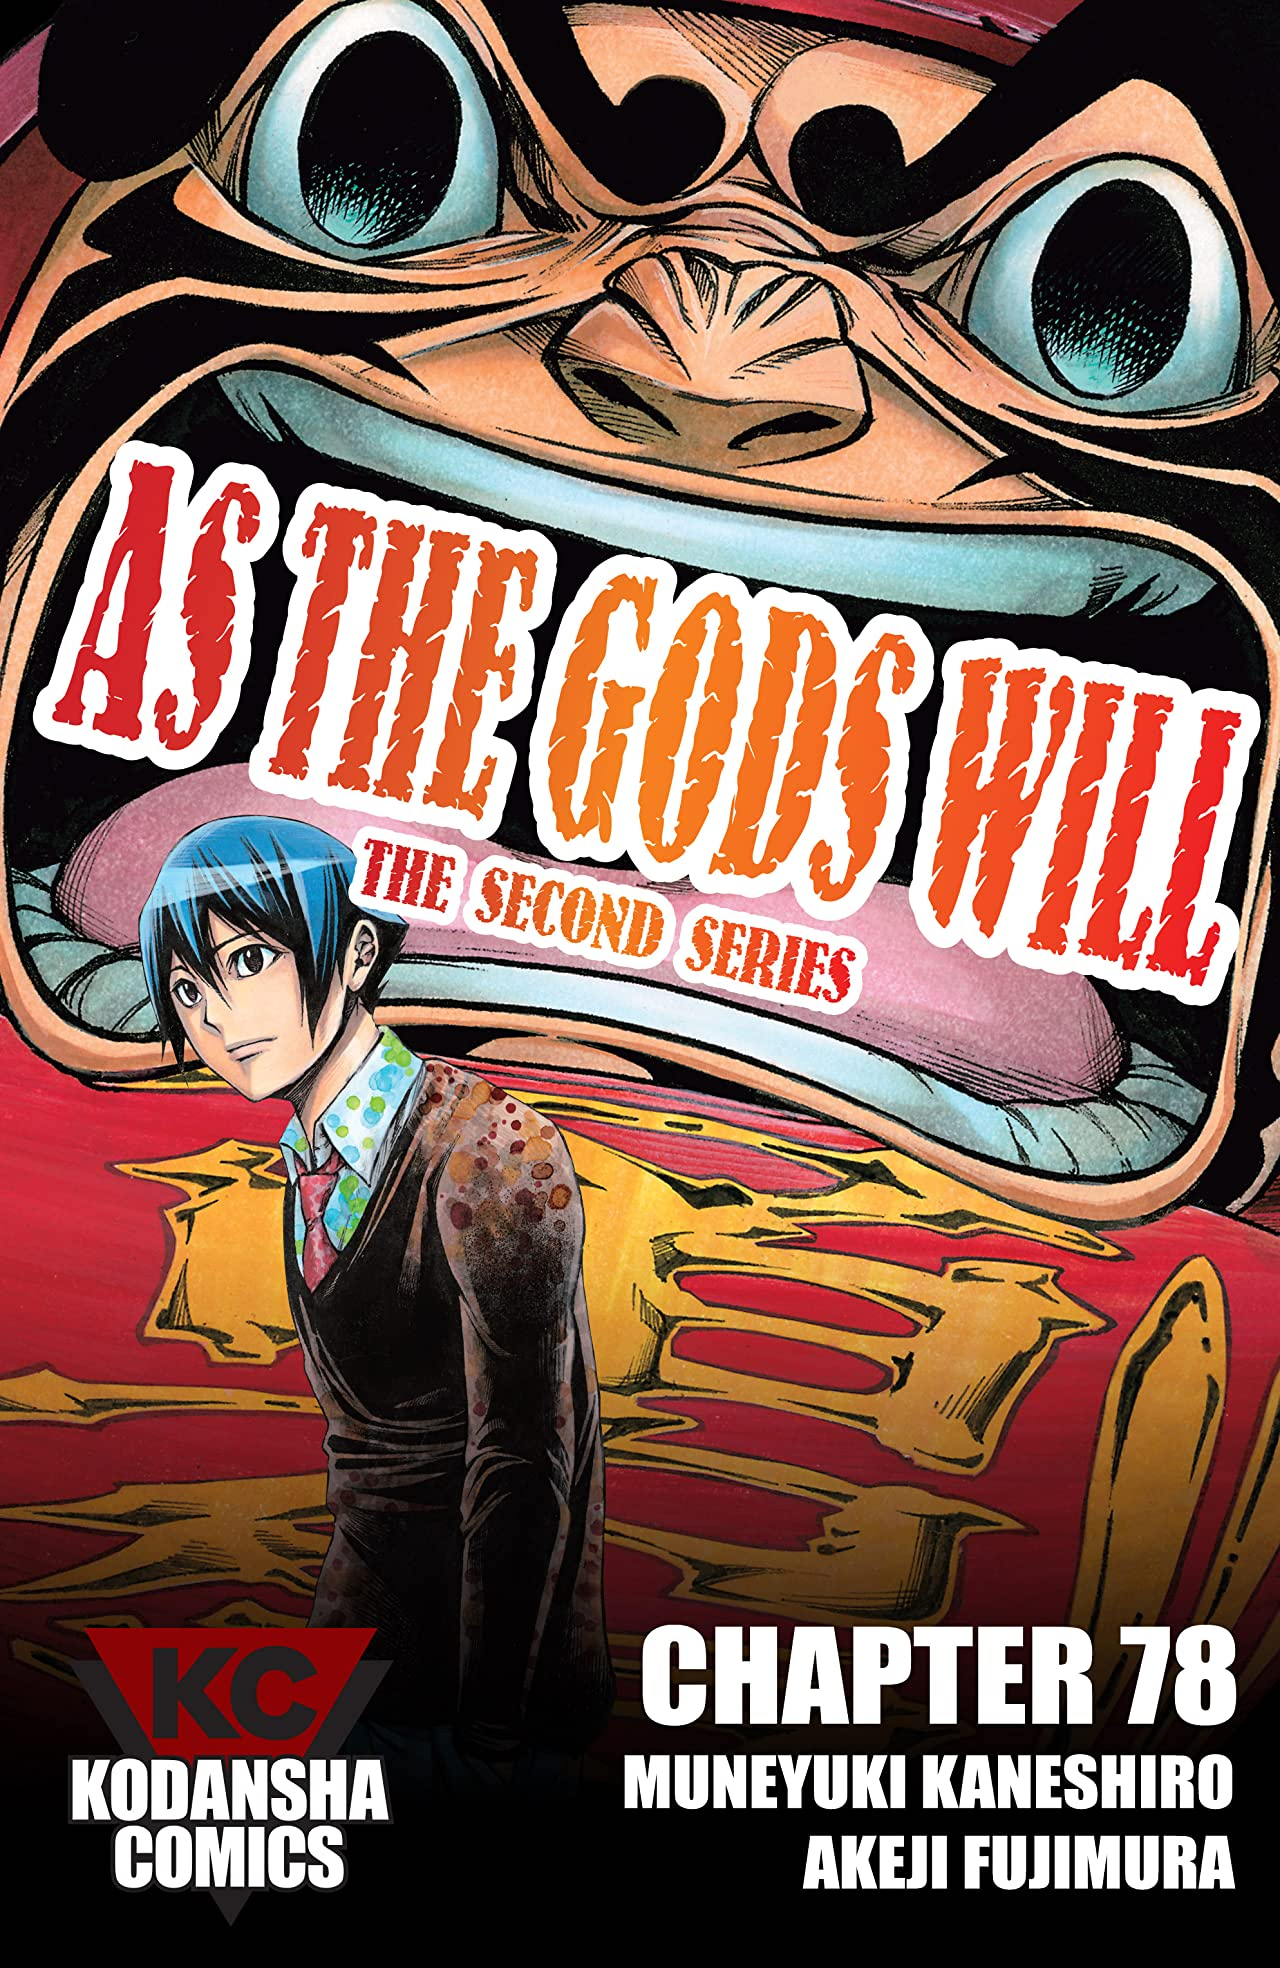 As The Gods Will: The Second Series #78